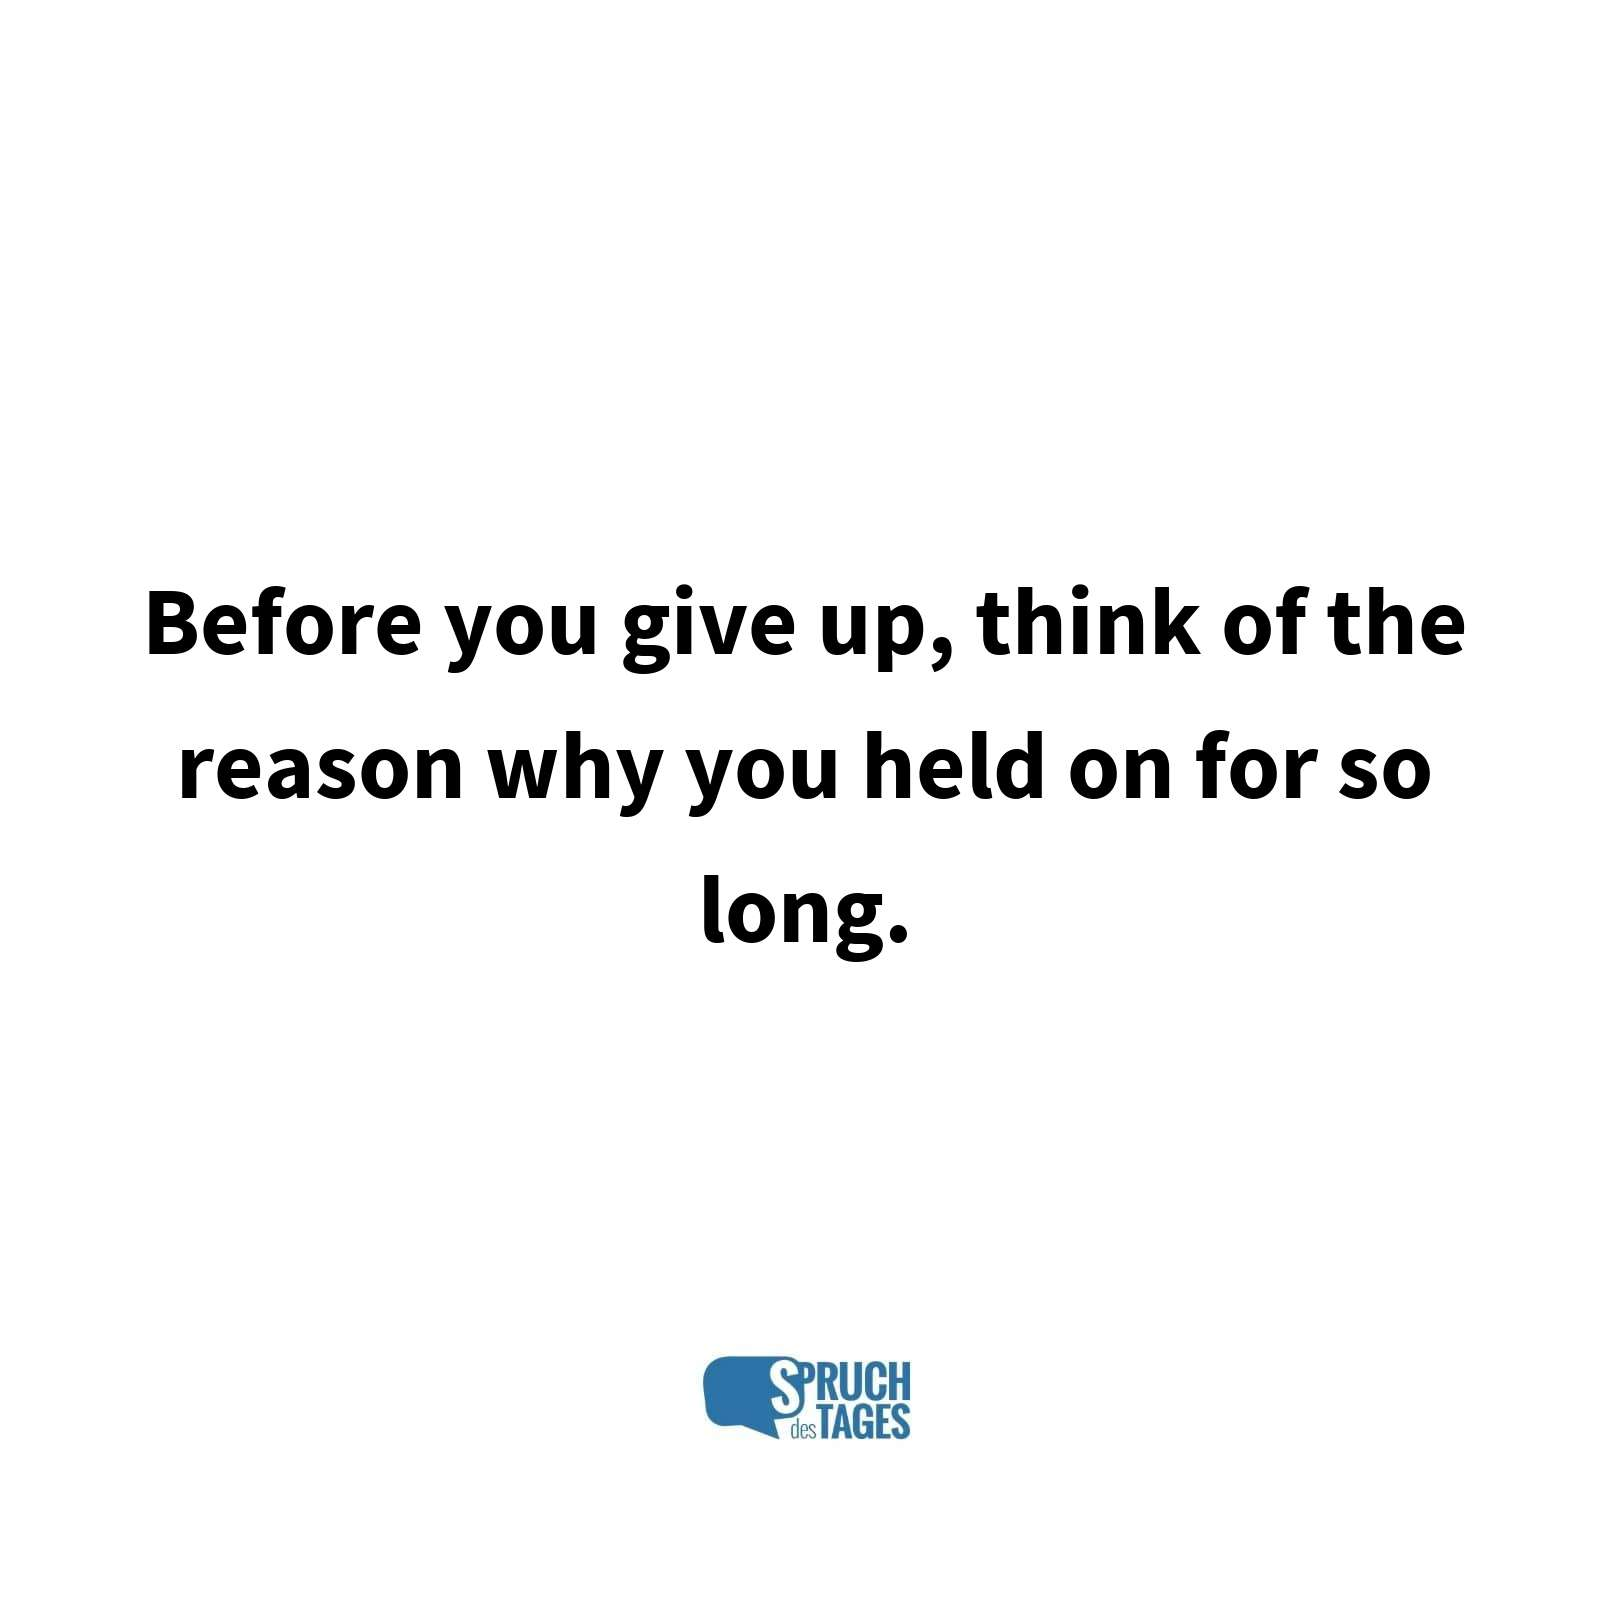 Before you give up, think of the reason why you held on for so long.